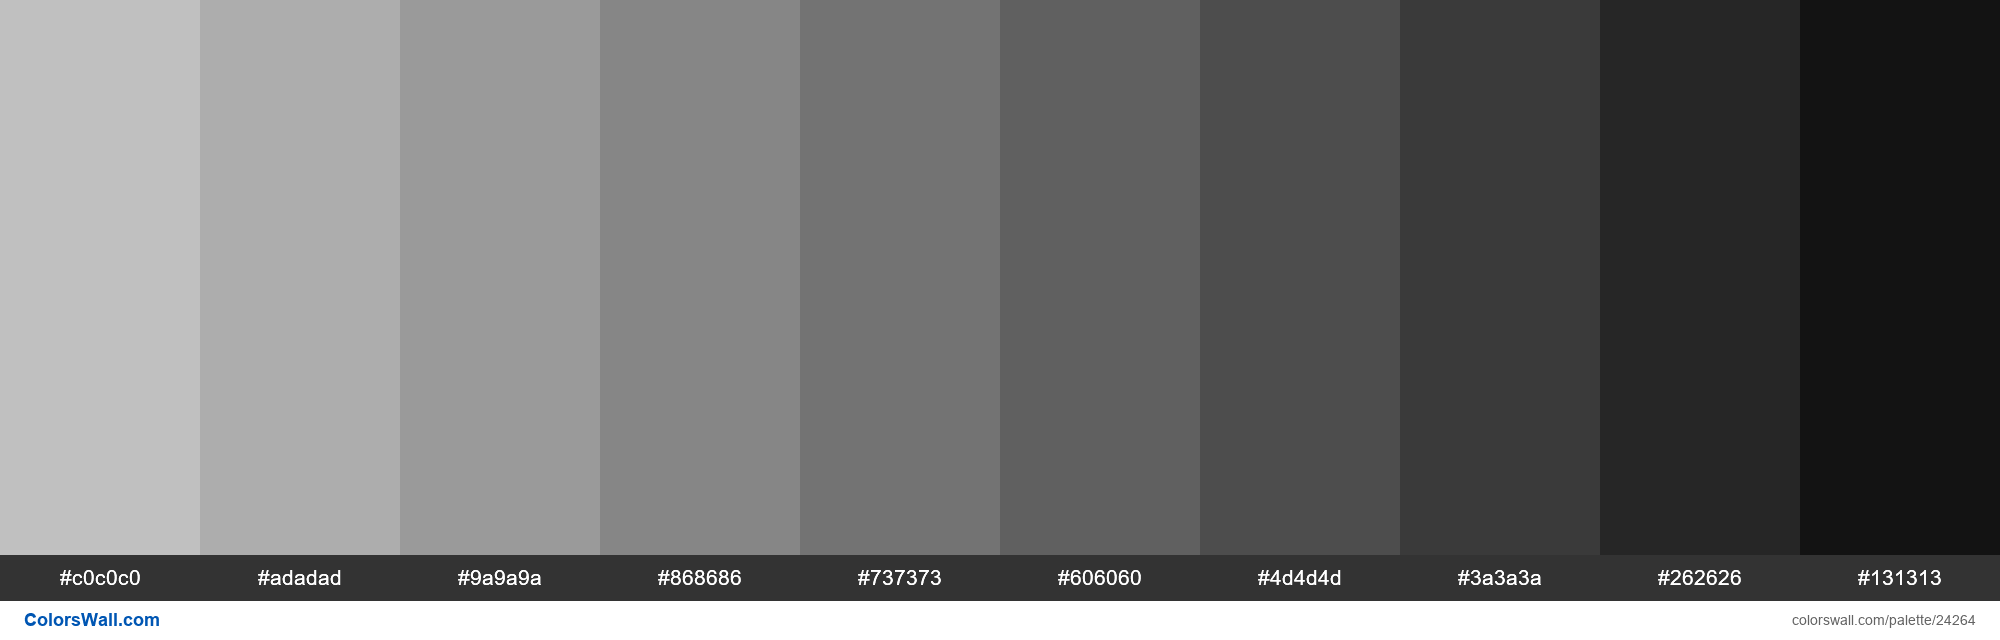 Shades of Silver #C0C0C0 hex color - #24264